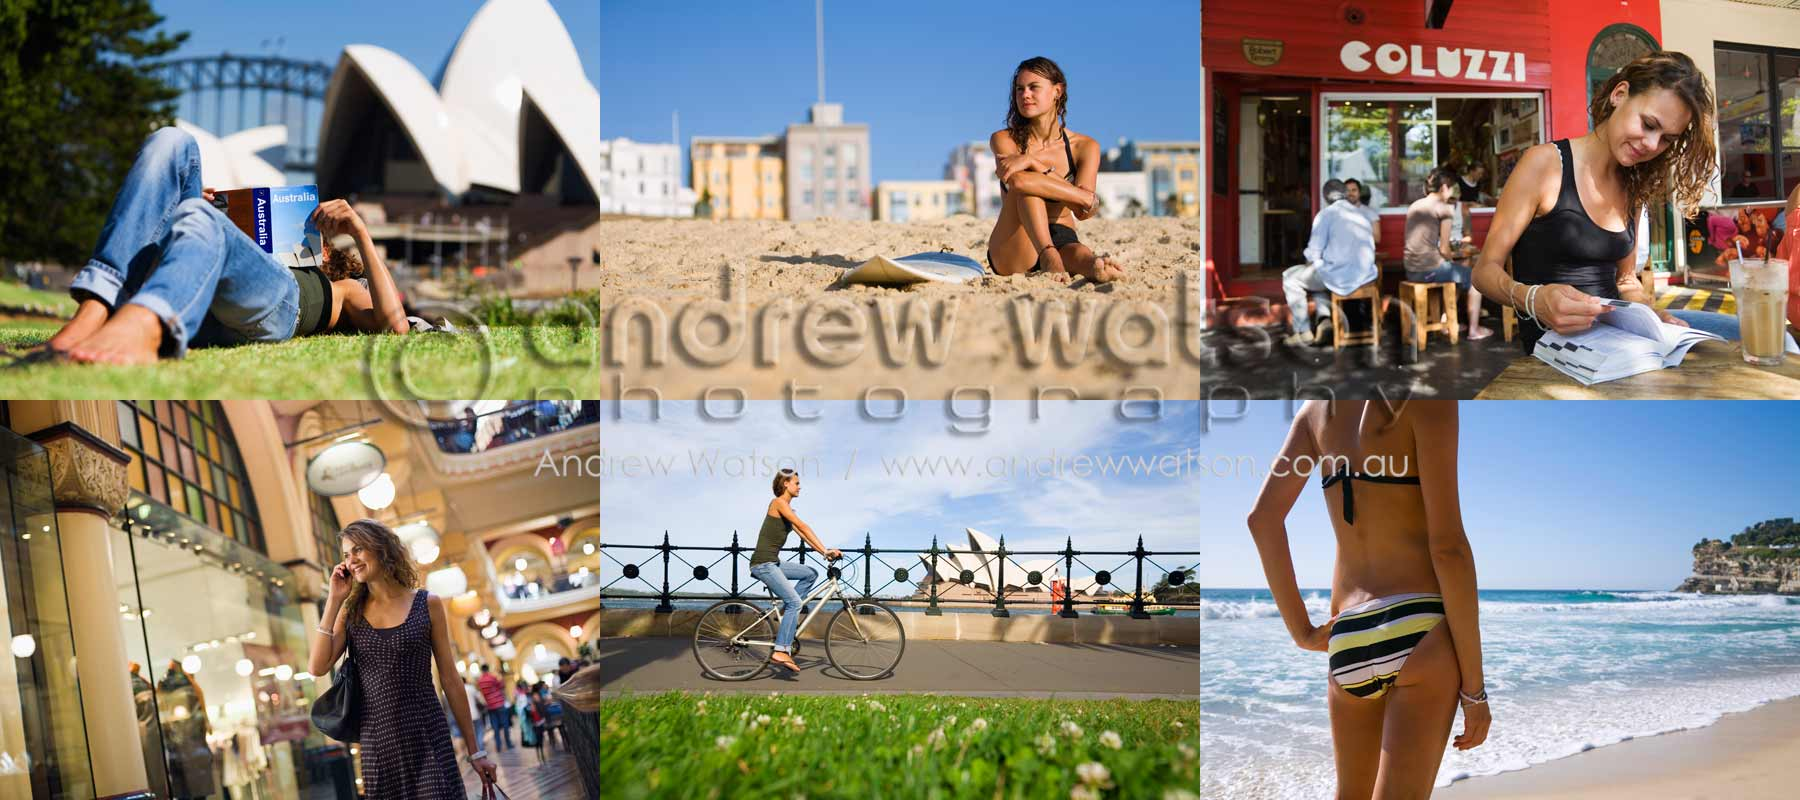 Tourism & Lifestyle Photography - Images of tourist enjoying the summer lifestyle in Sydney